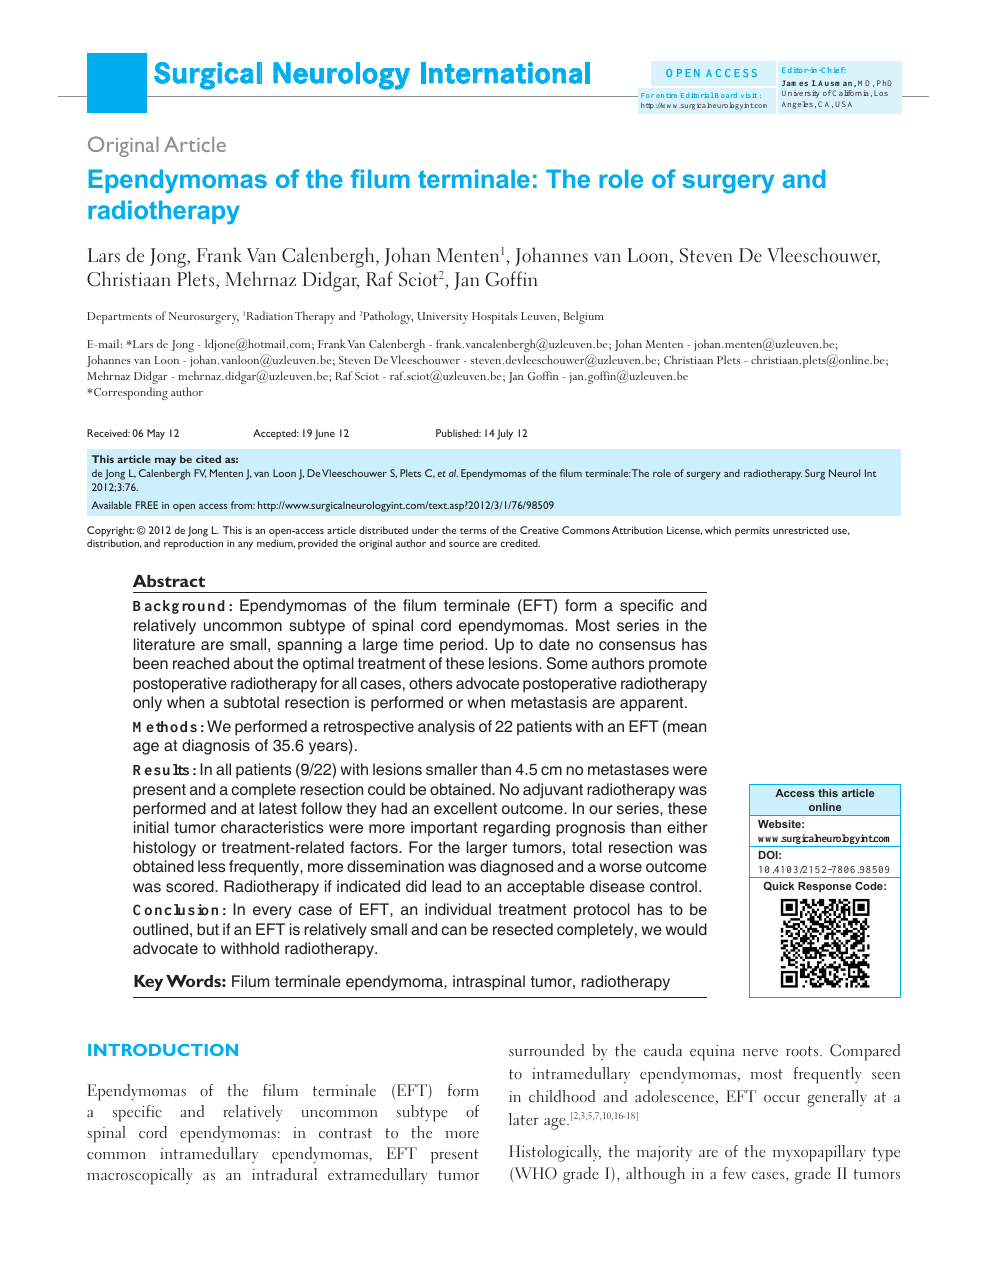 Ependymomas Of The Filum Terminale The Role Of Surgery And Radiotherapy Topic Of Research Paper In Clinical Medicine Download Scholarly Article Pdf And Read For Free On Cyberleninka Open Science Hub Diagnostic criteria, surgical indication and filum pathology. ependymomas of the filum terminale the